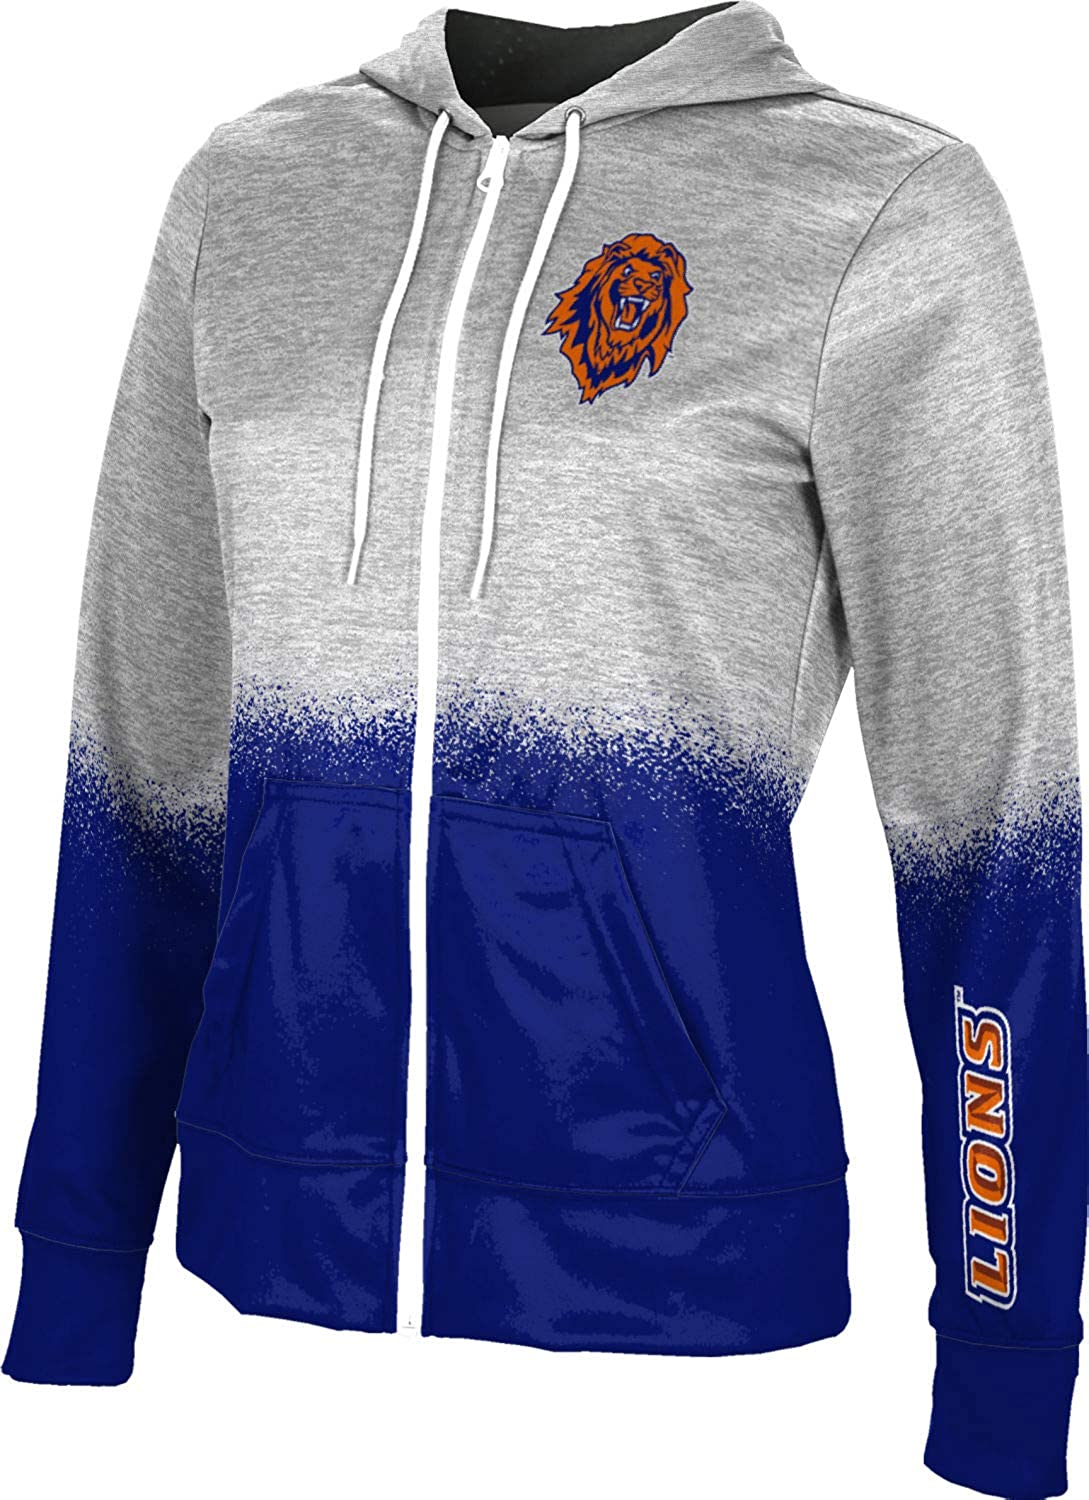 High material Recommended Lincoln University PA Girls' Zipper Swea School Hoodie Spirit